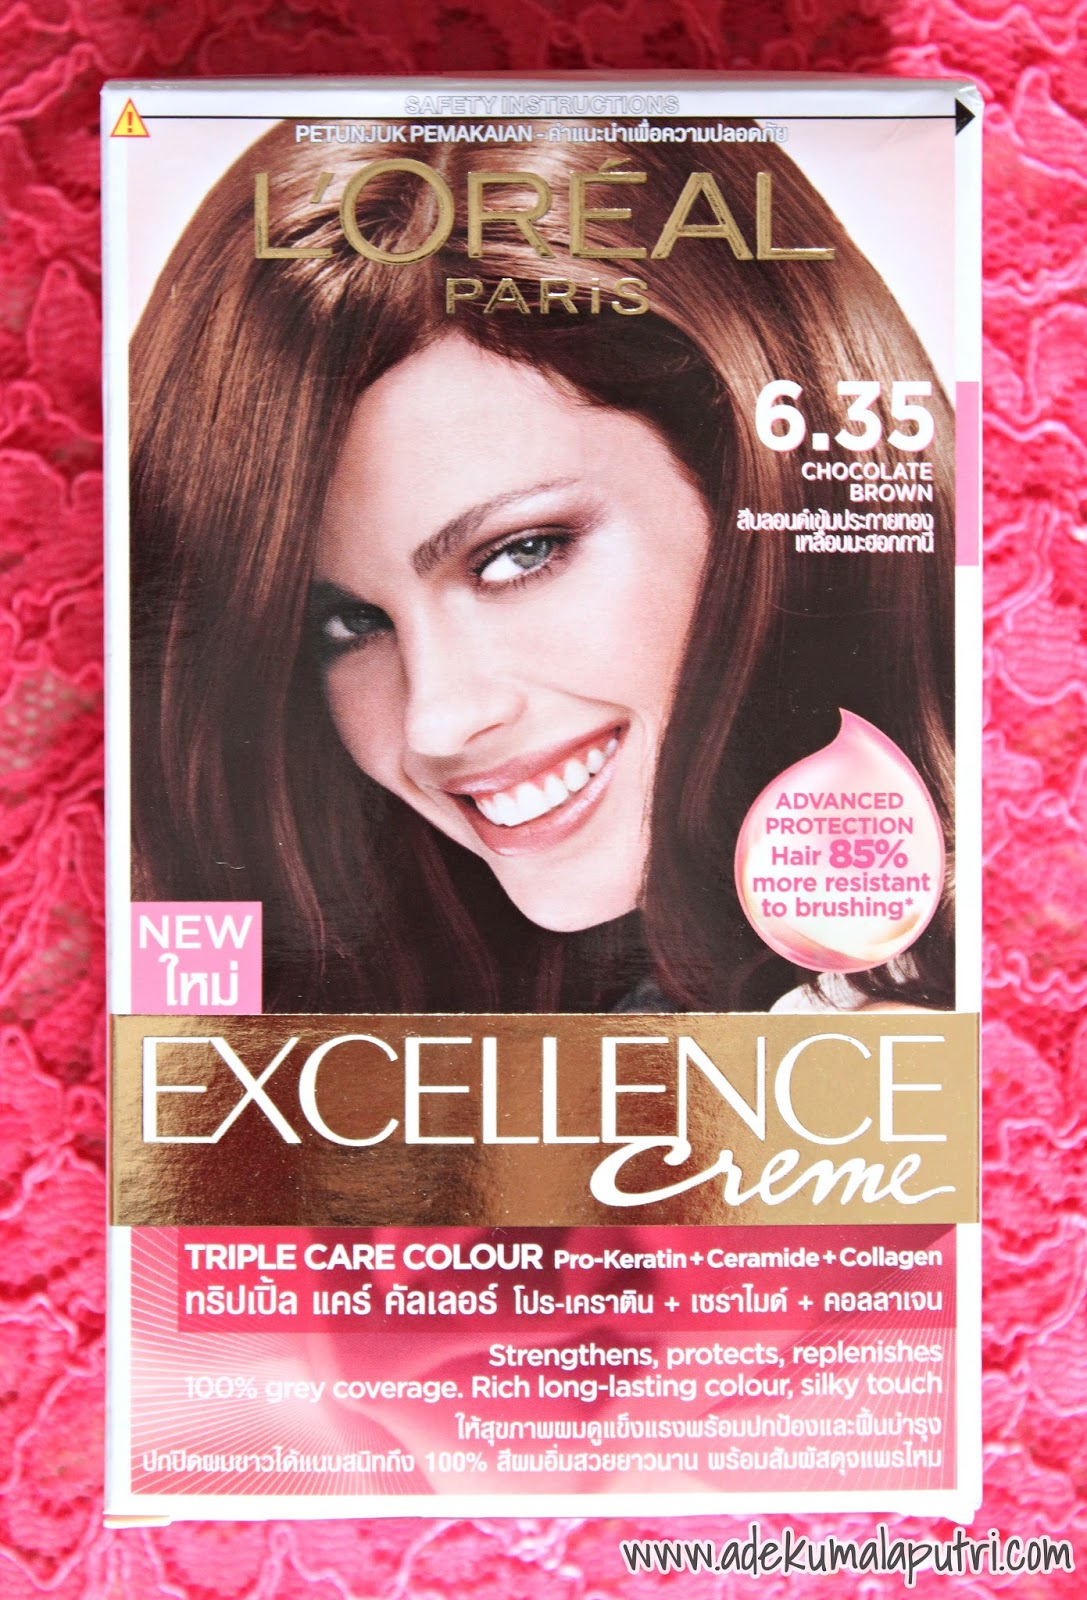 Chocolate Brown Hair Dye Loreal Hairstyle Inspirations 2018